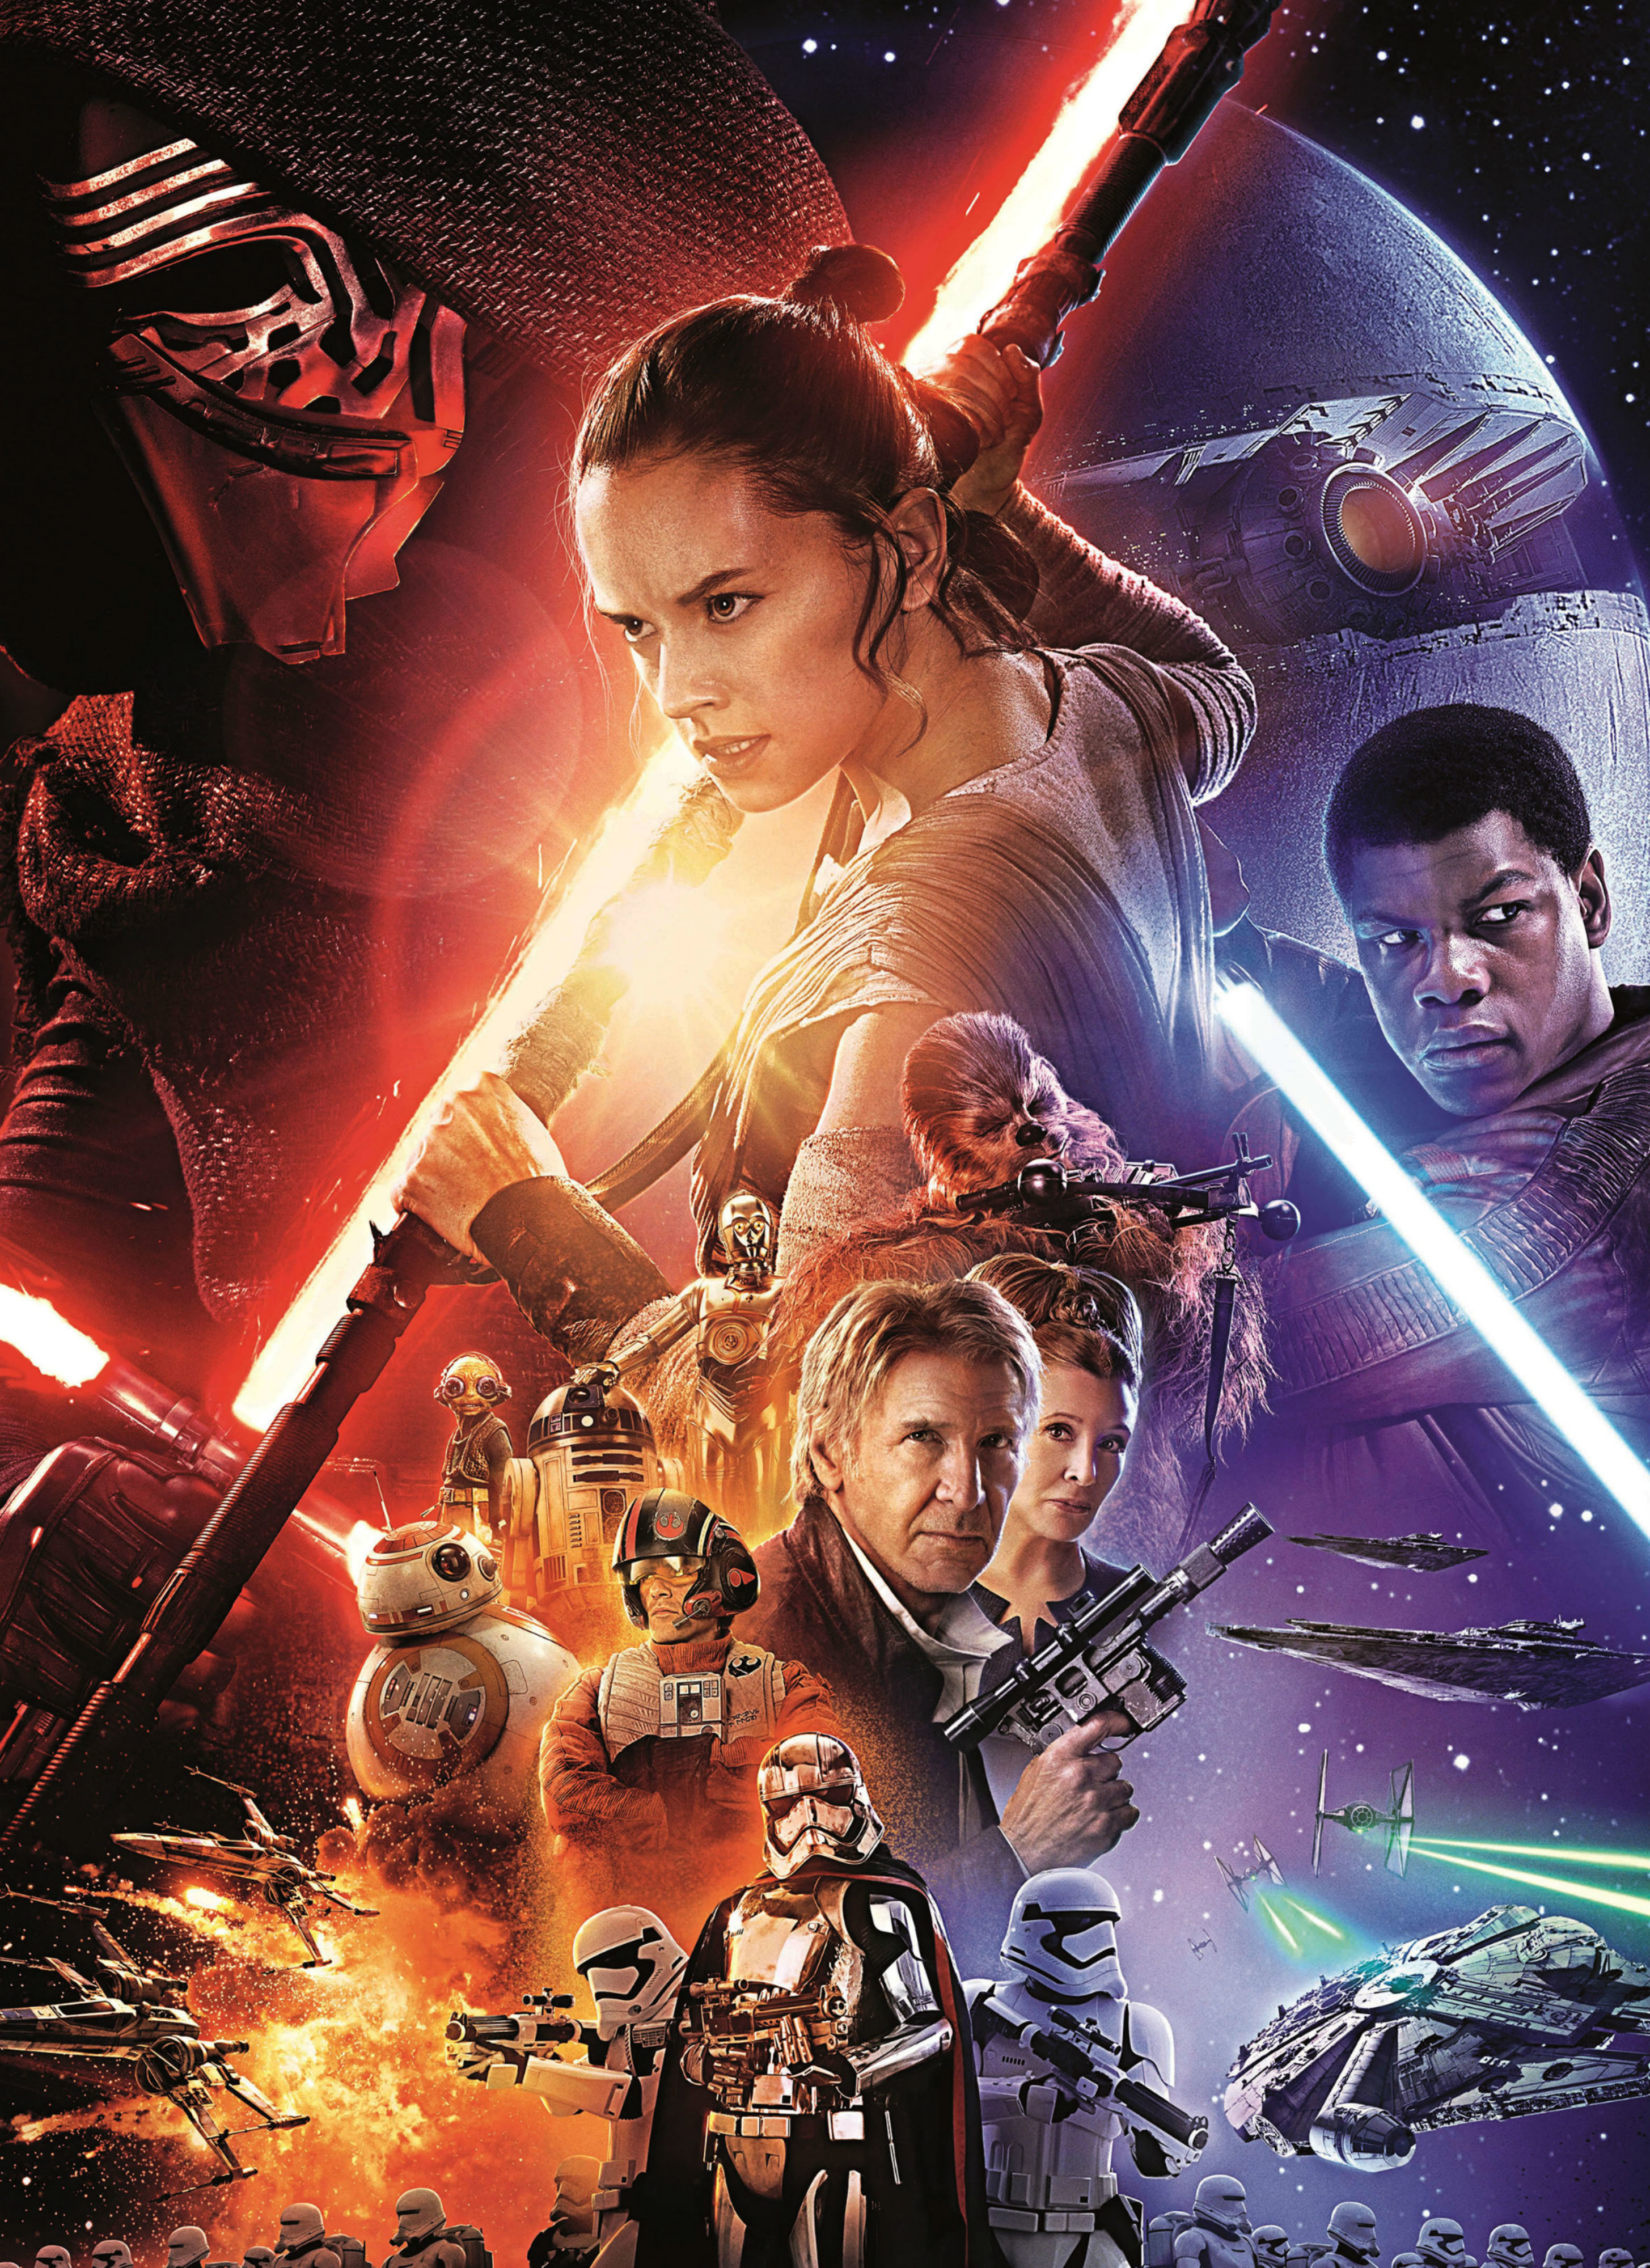 """Adam Driver, Kenny Baker, Anthony Daniels, Daisy Ridley, Peter Mayhew, John Boyega, Oscar Isaac, Harrison Ford, Carrie Fisher and Gwendoline Christie star in """"Star Wars: The Force Awakens"""" in 2015."""